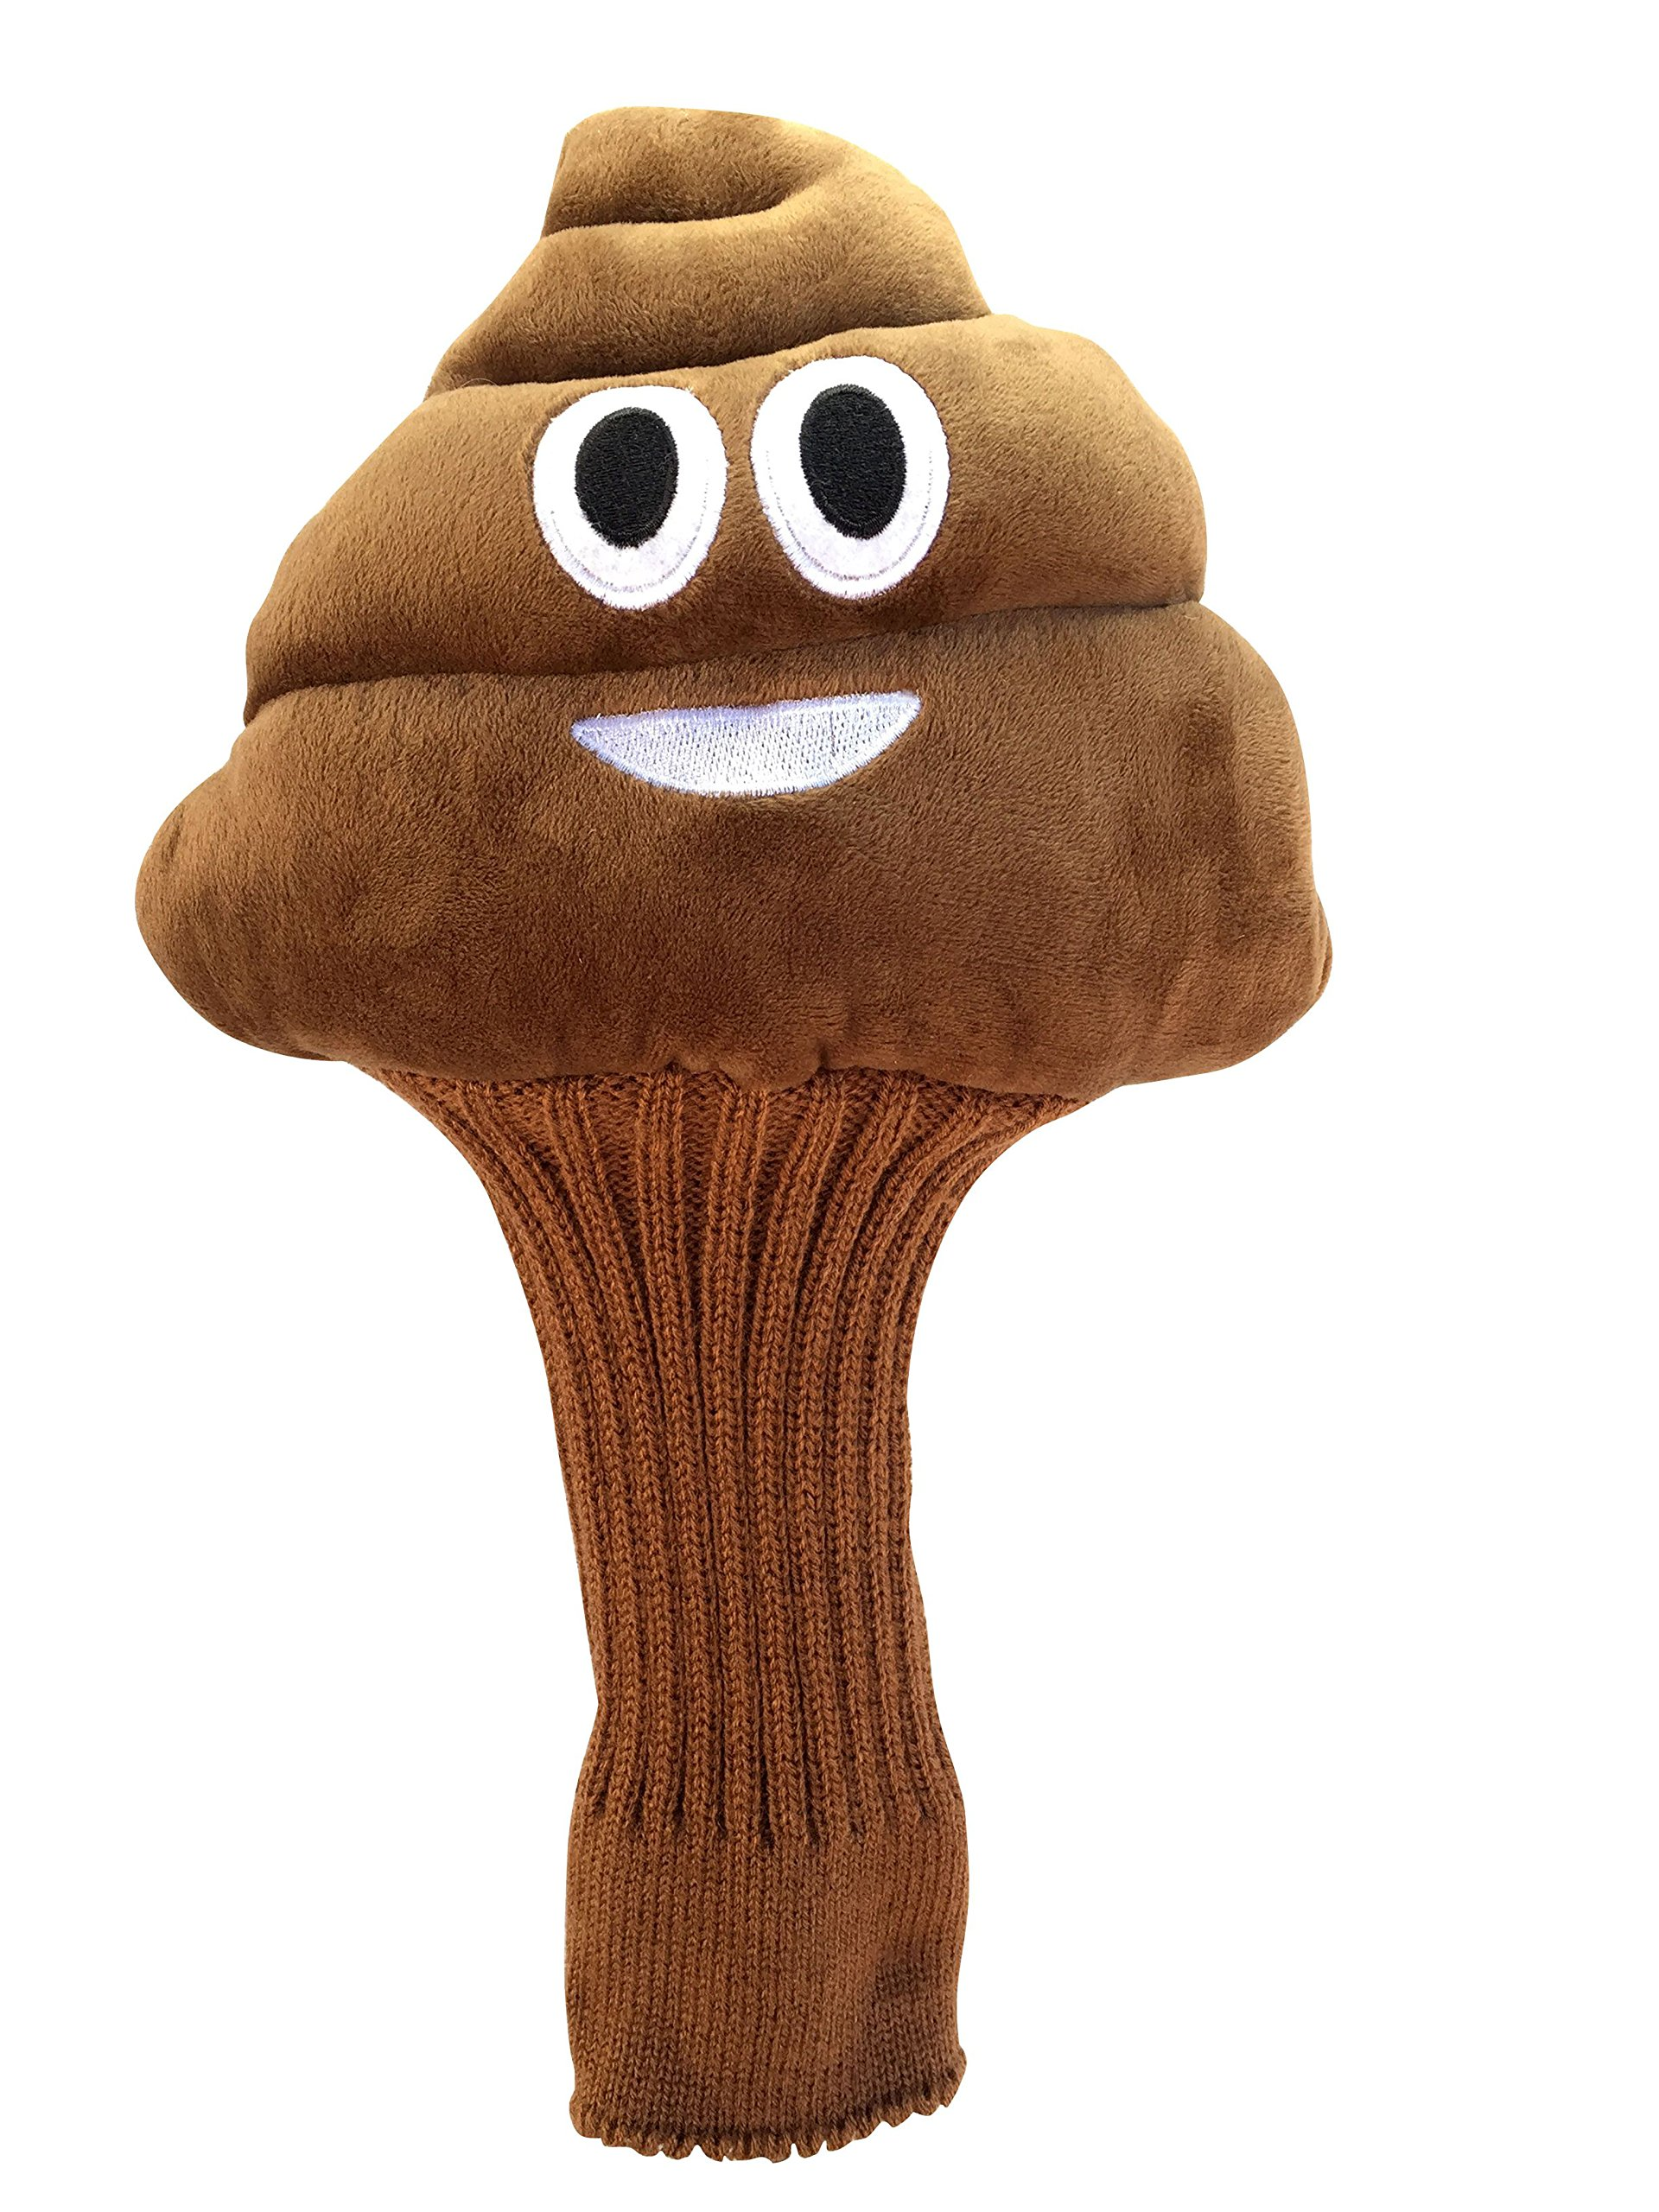 Poopy Golf Head Cover by Golf Giddy